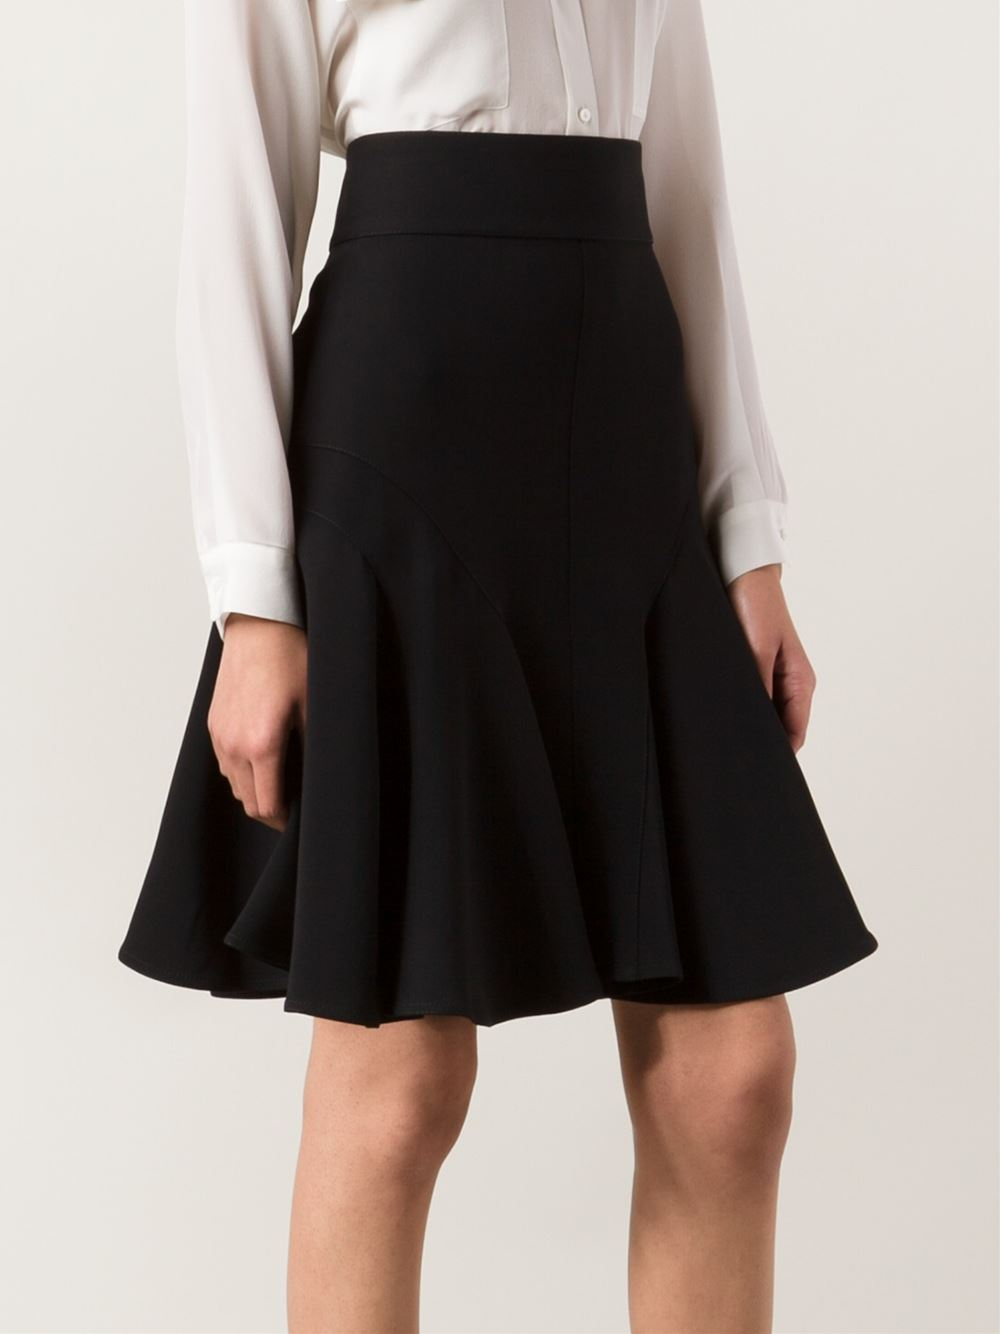 Givenchy A-Line Godet Skirt in Black